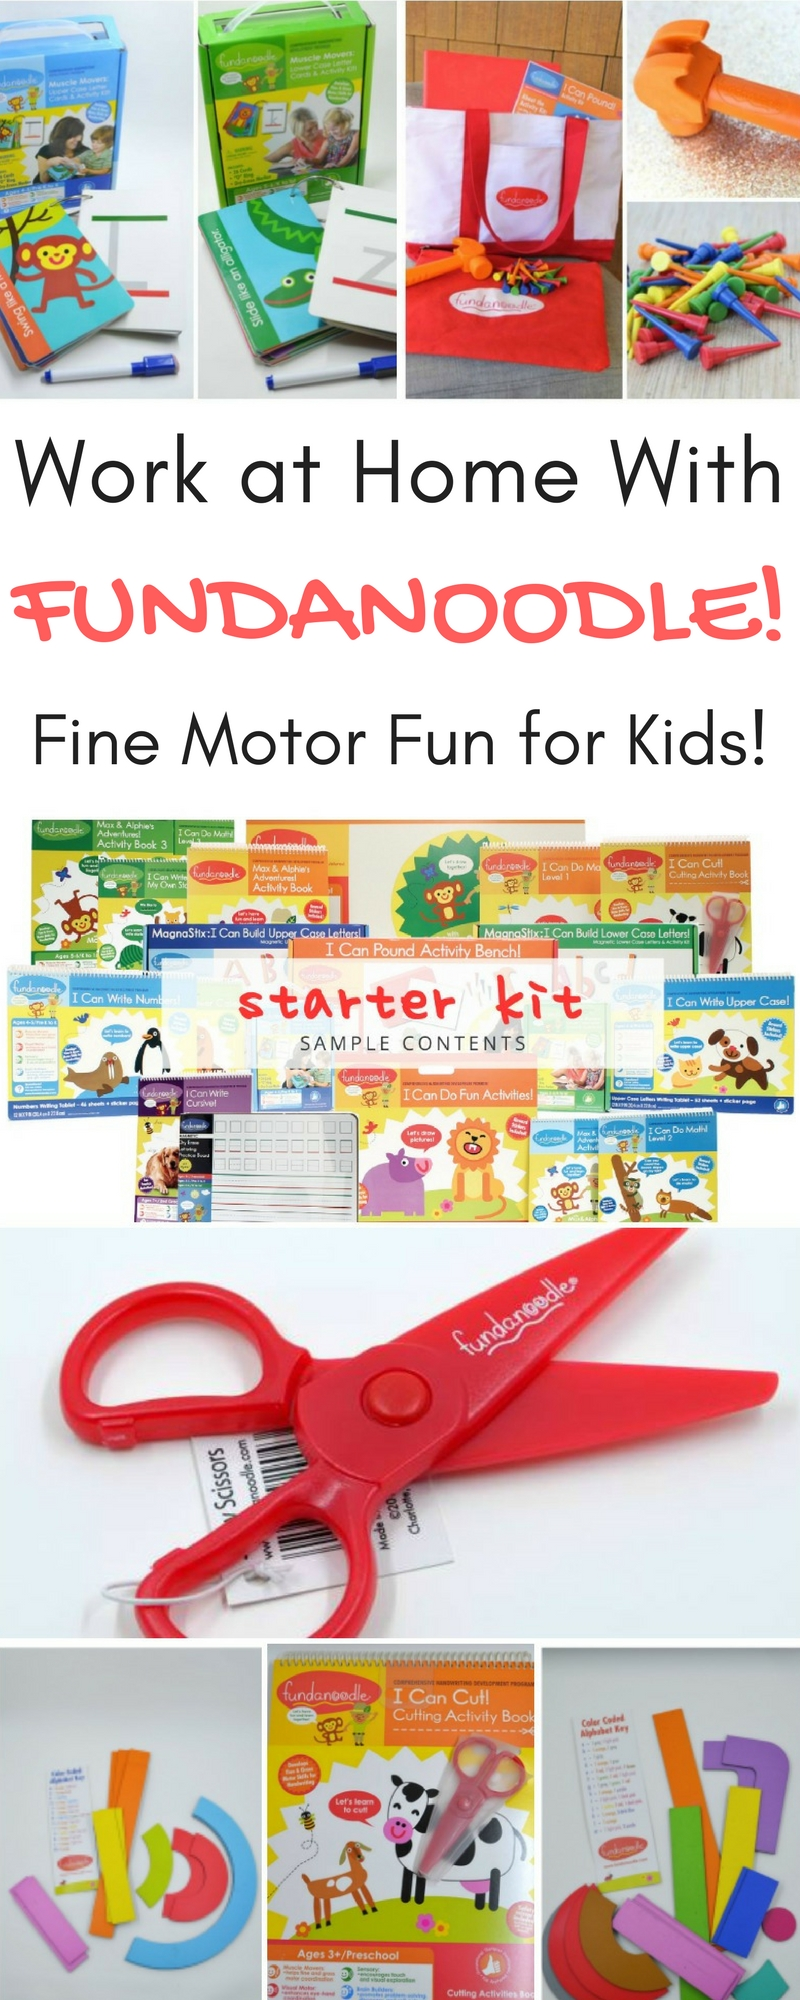 Work at Home with Fundanoodle! Fine Motor Fun for Kids!